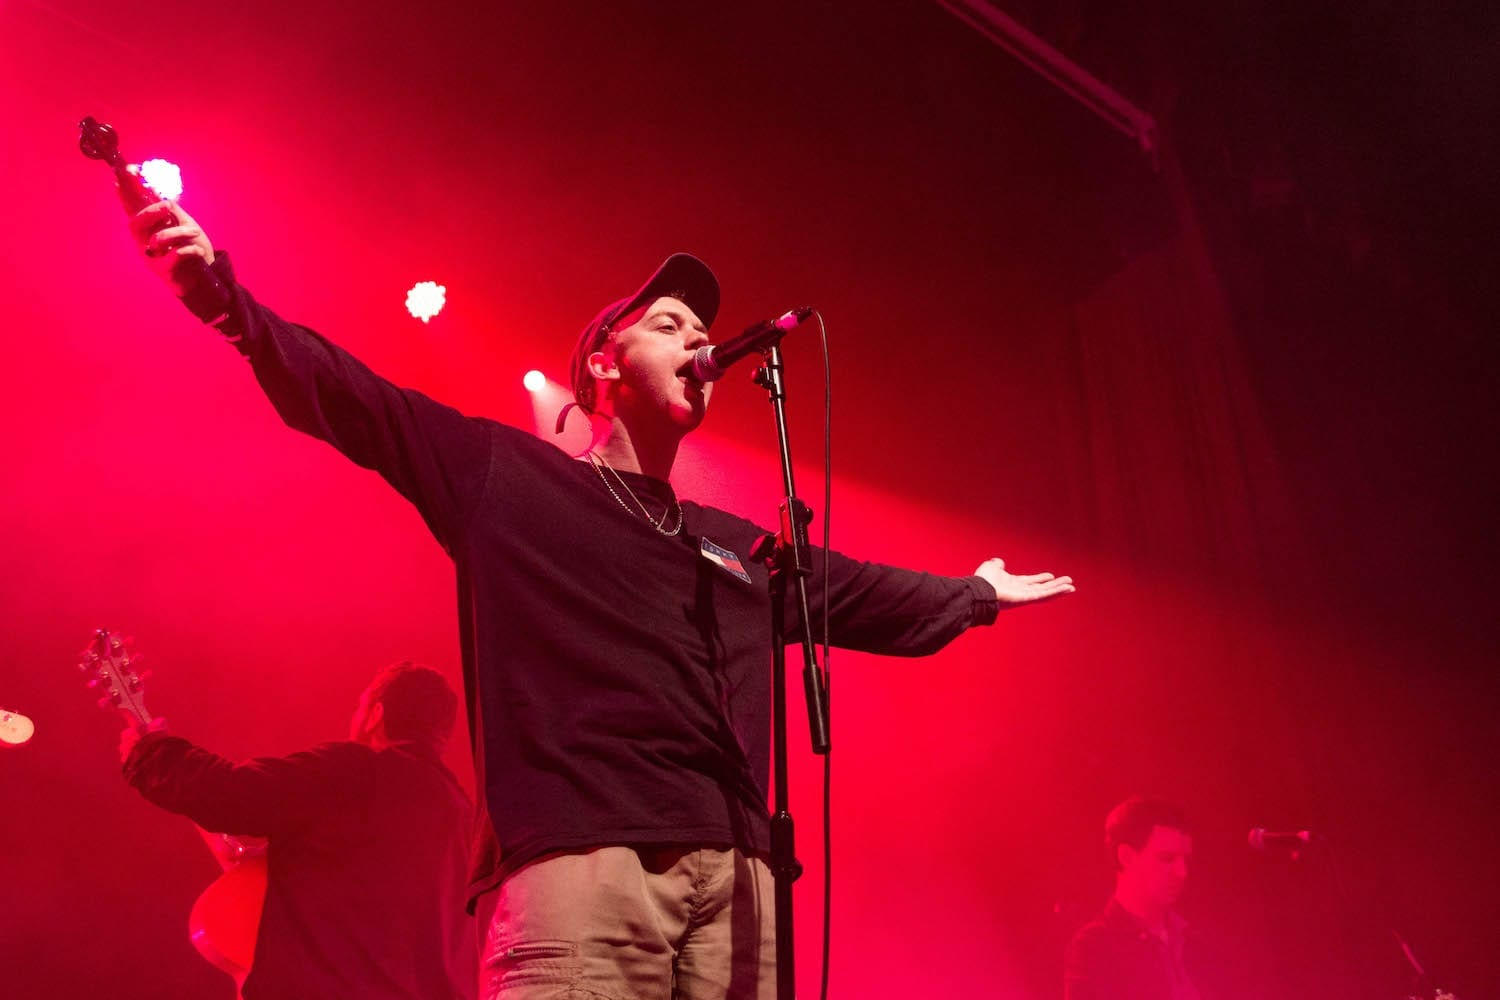 Live Review: DMA'S // Electric Ballroom – 24.10.16